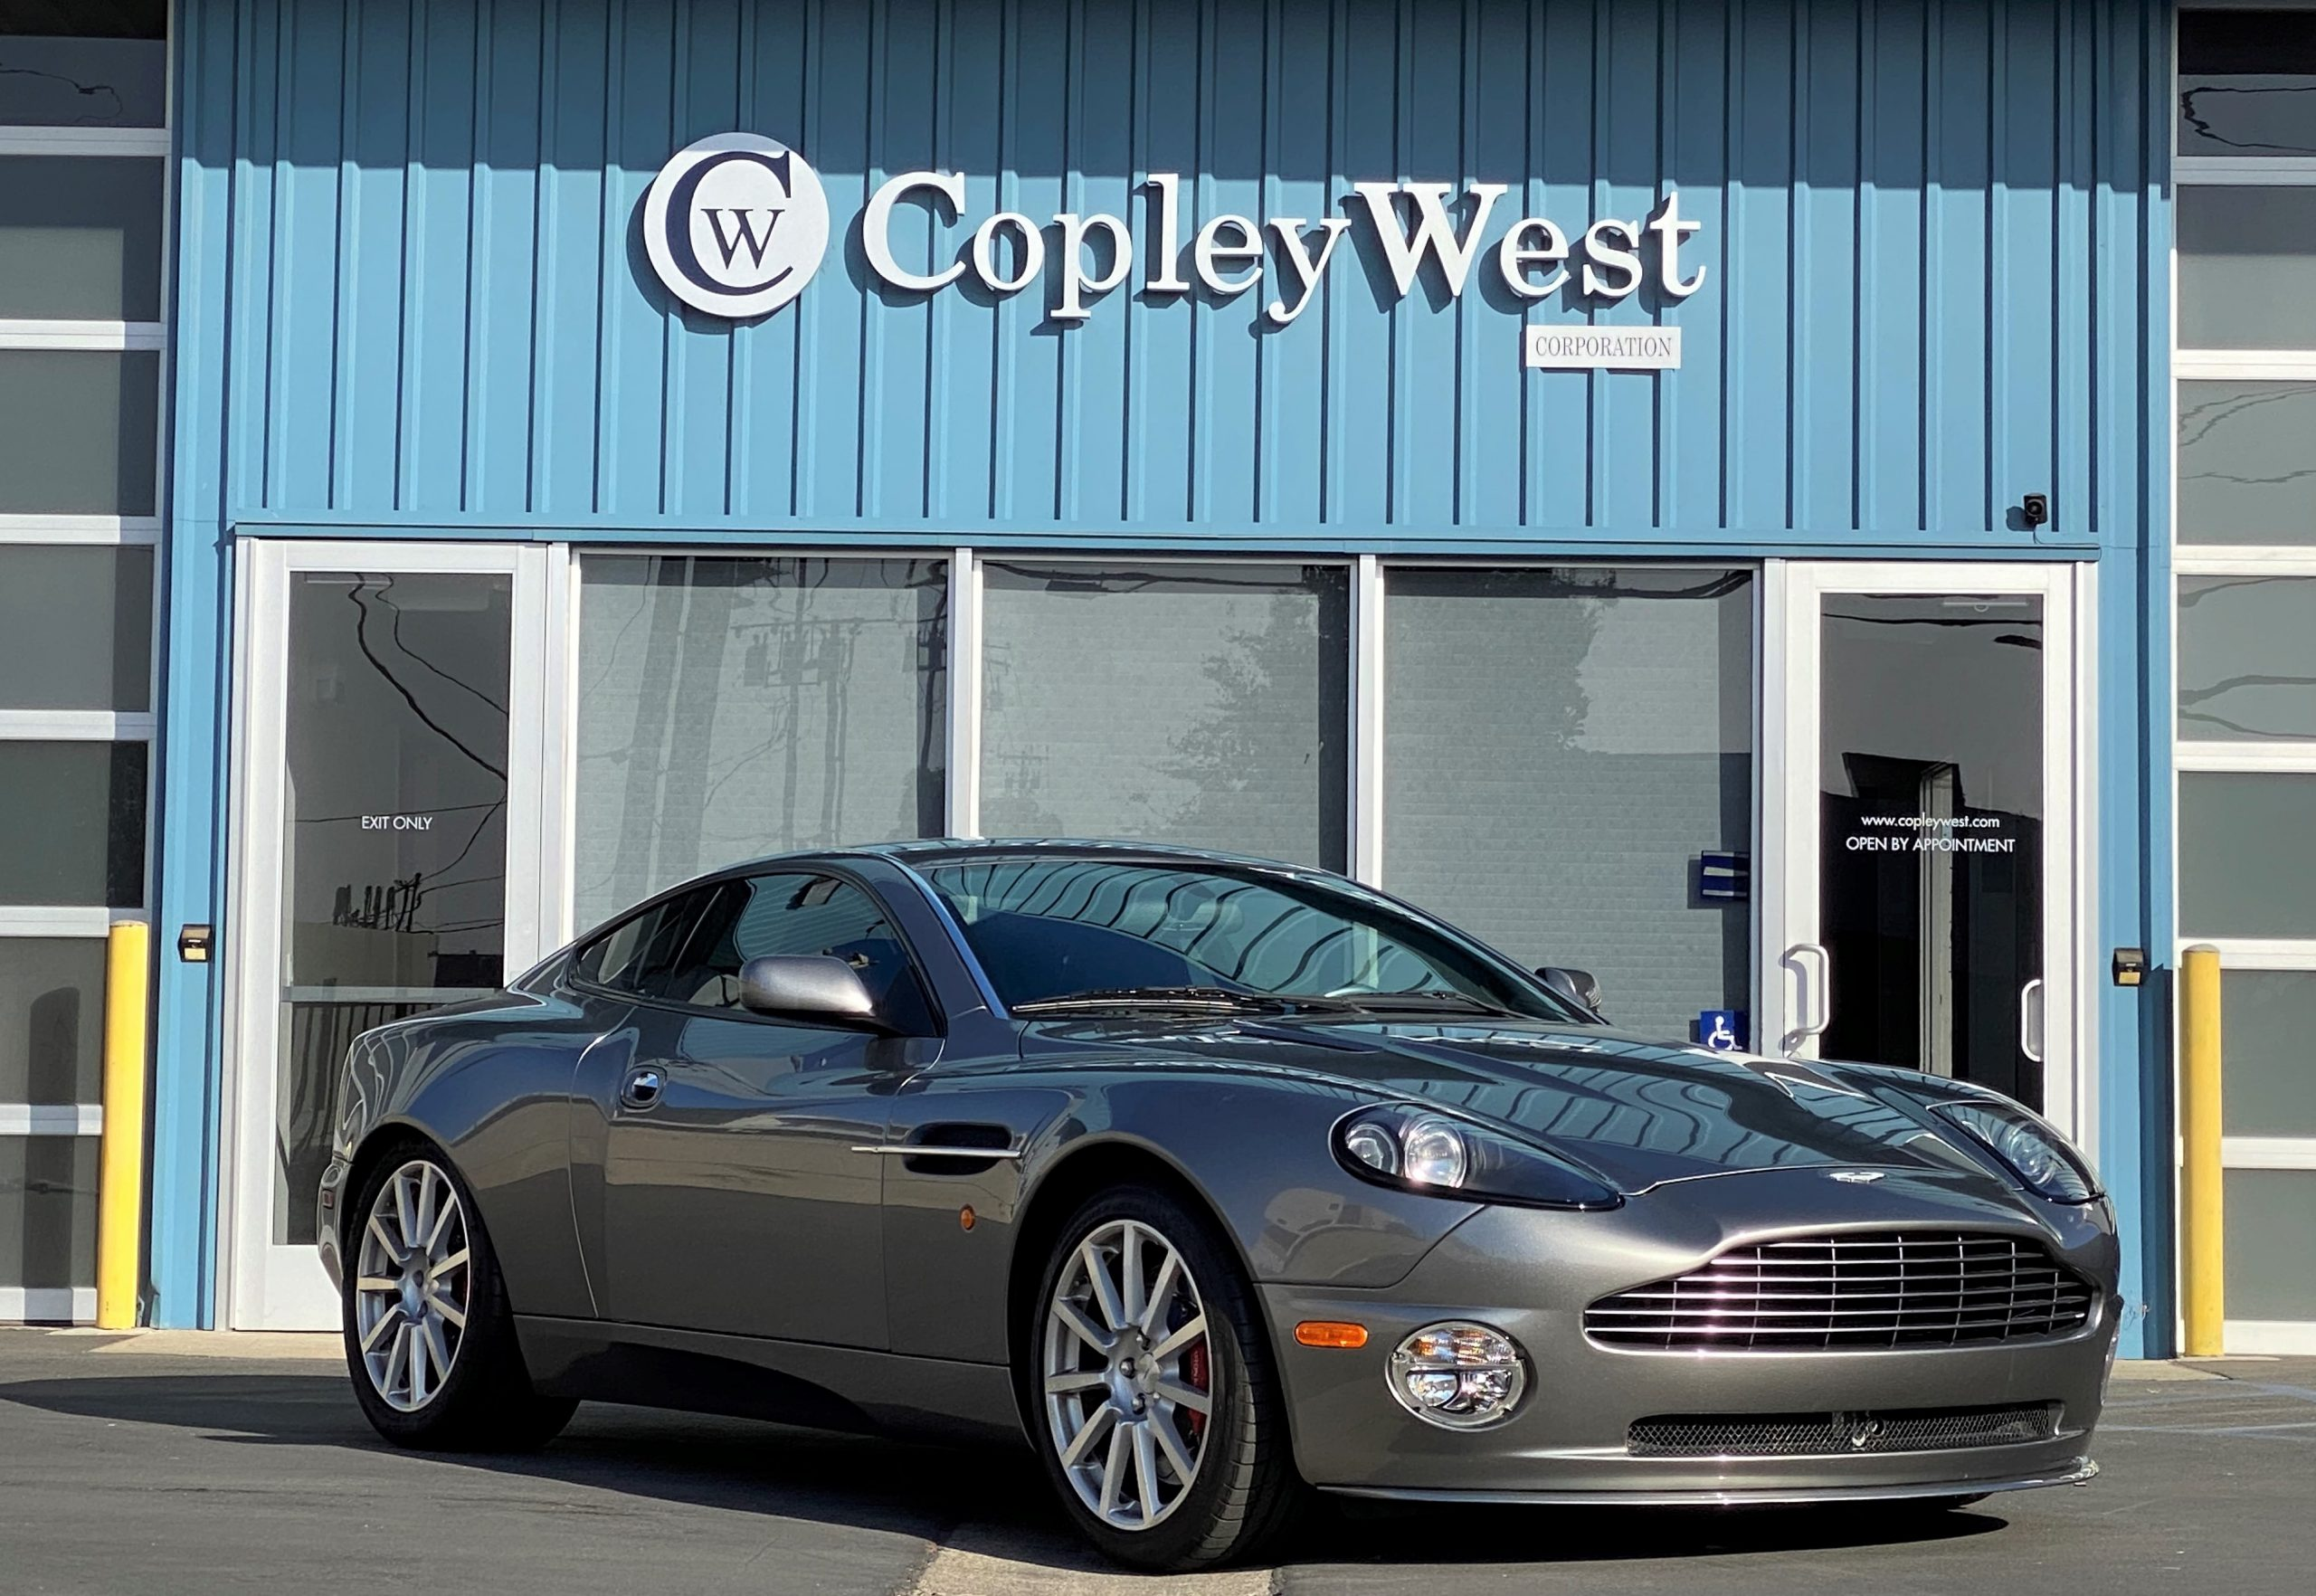 2005 Aston Martin Vanquish S For Sale Copleywest Corporation Vintage Collector Sports Car Boutique Dealership